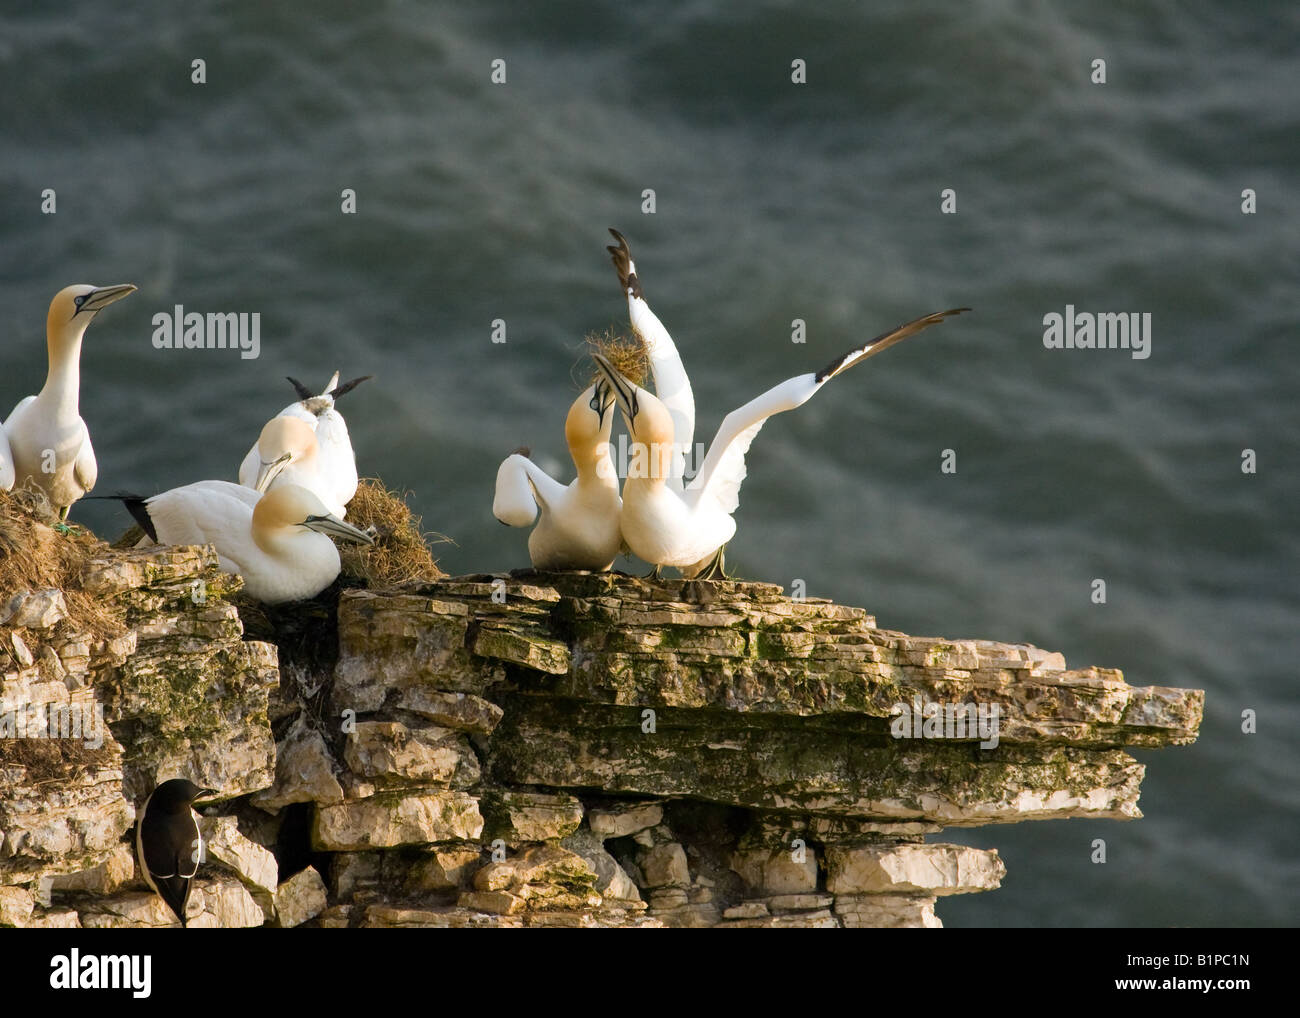 Gannets nesting at Staple Newk, Bempton Cliffs - Stock Image